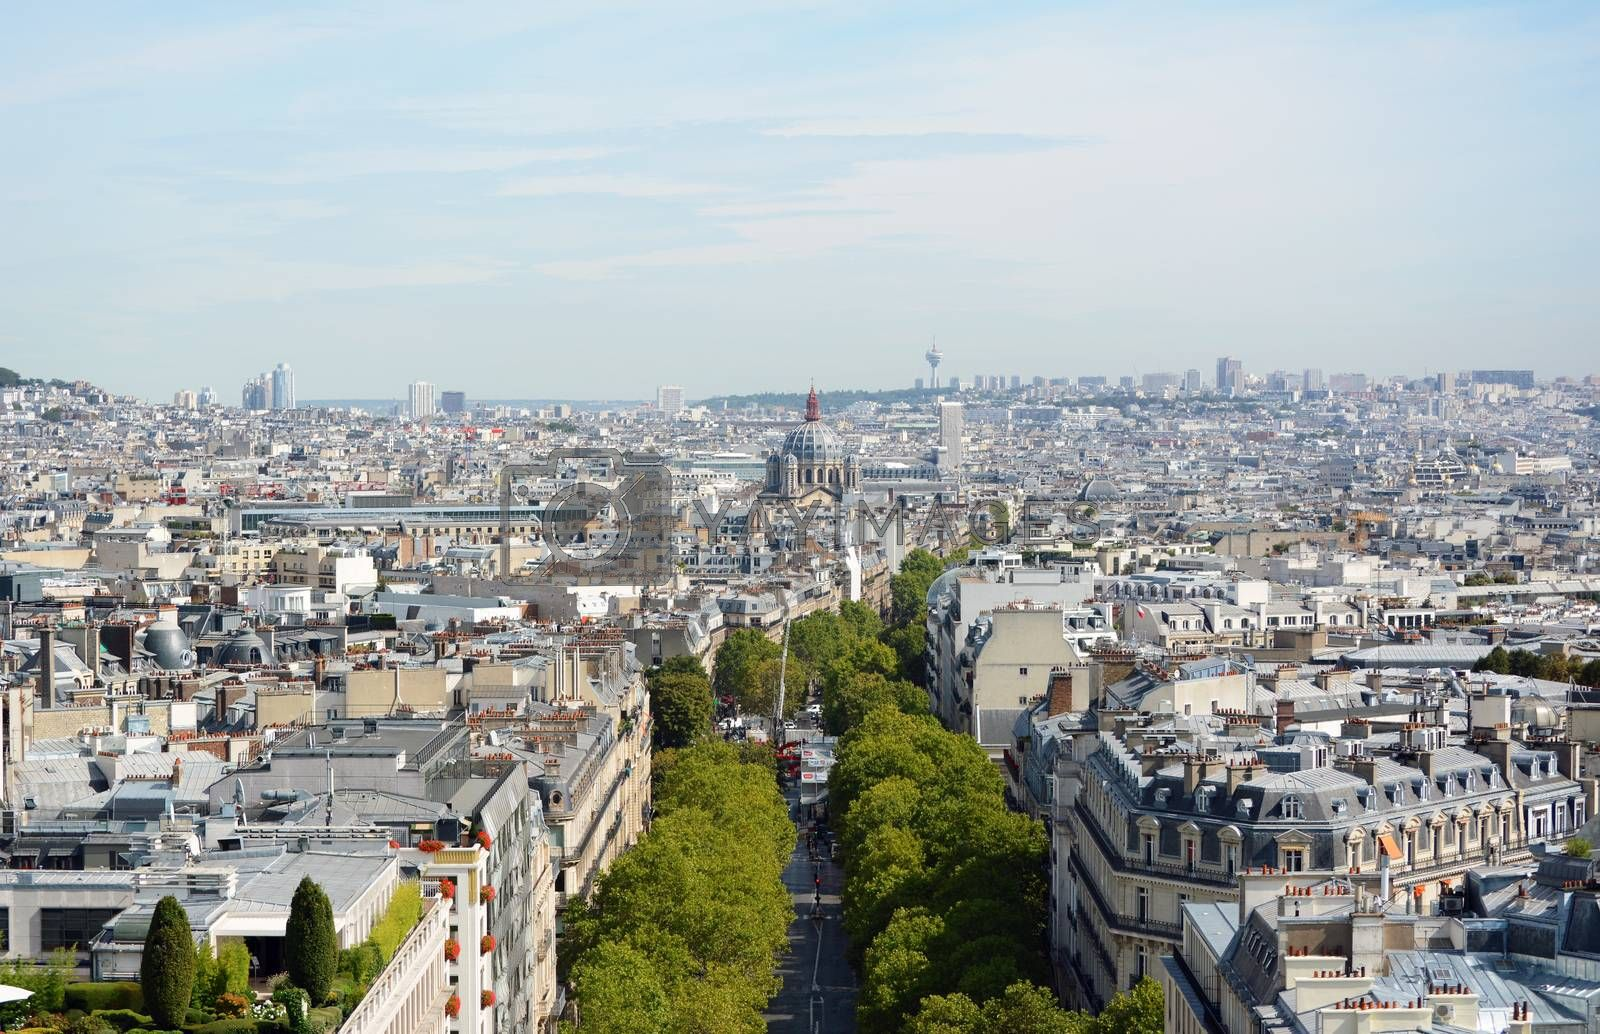 View down Avenue de Friedland from top of Arc de Triomphe, towards Saint-Augustin church. The Hertzienne communications tower stands 141 metres high on the outskirts of the city.